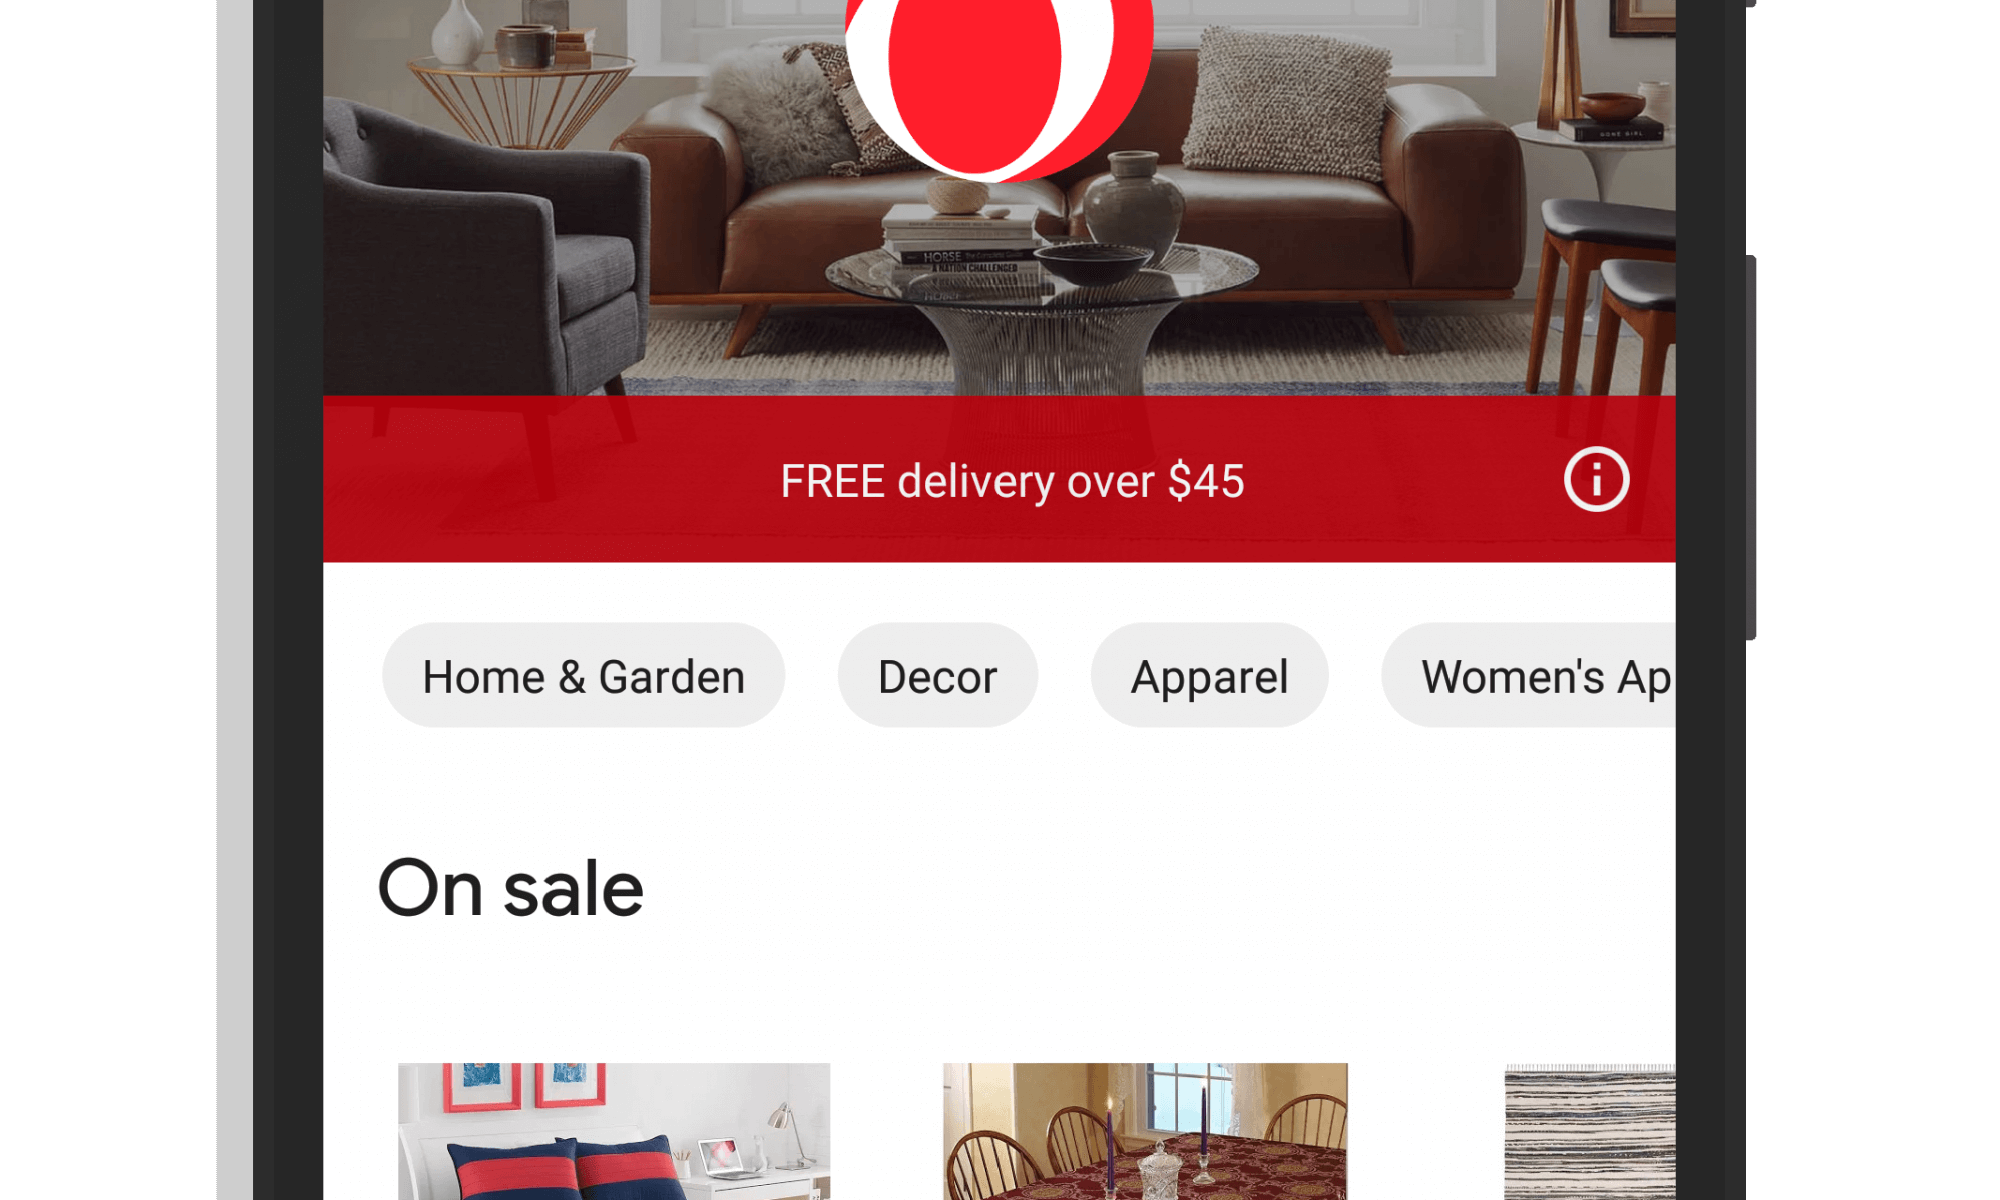 Overstock on Google Express